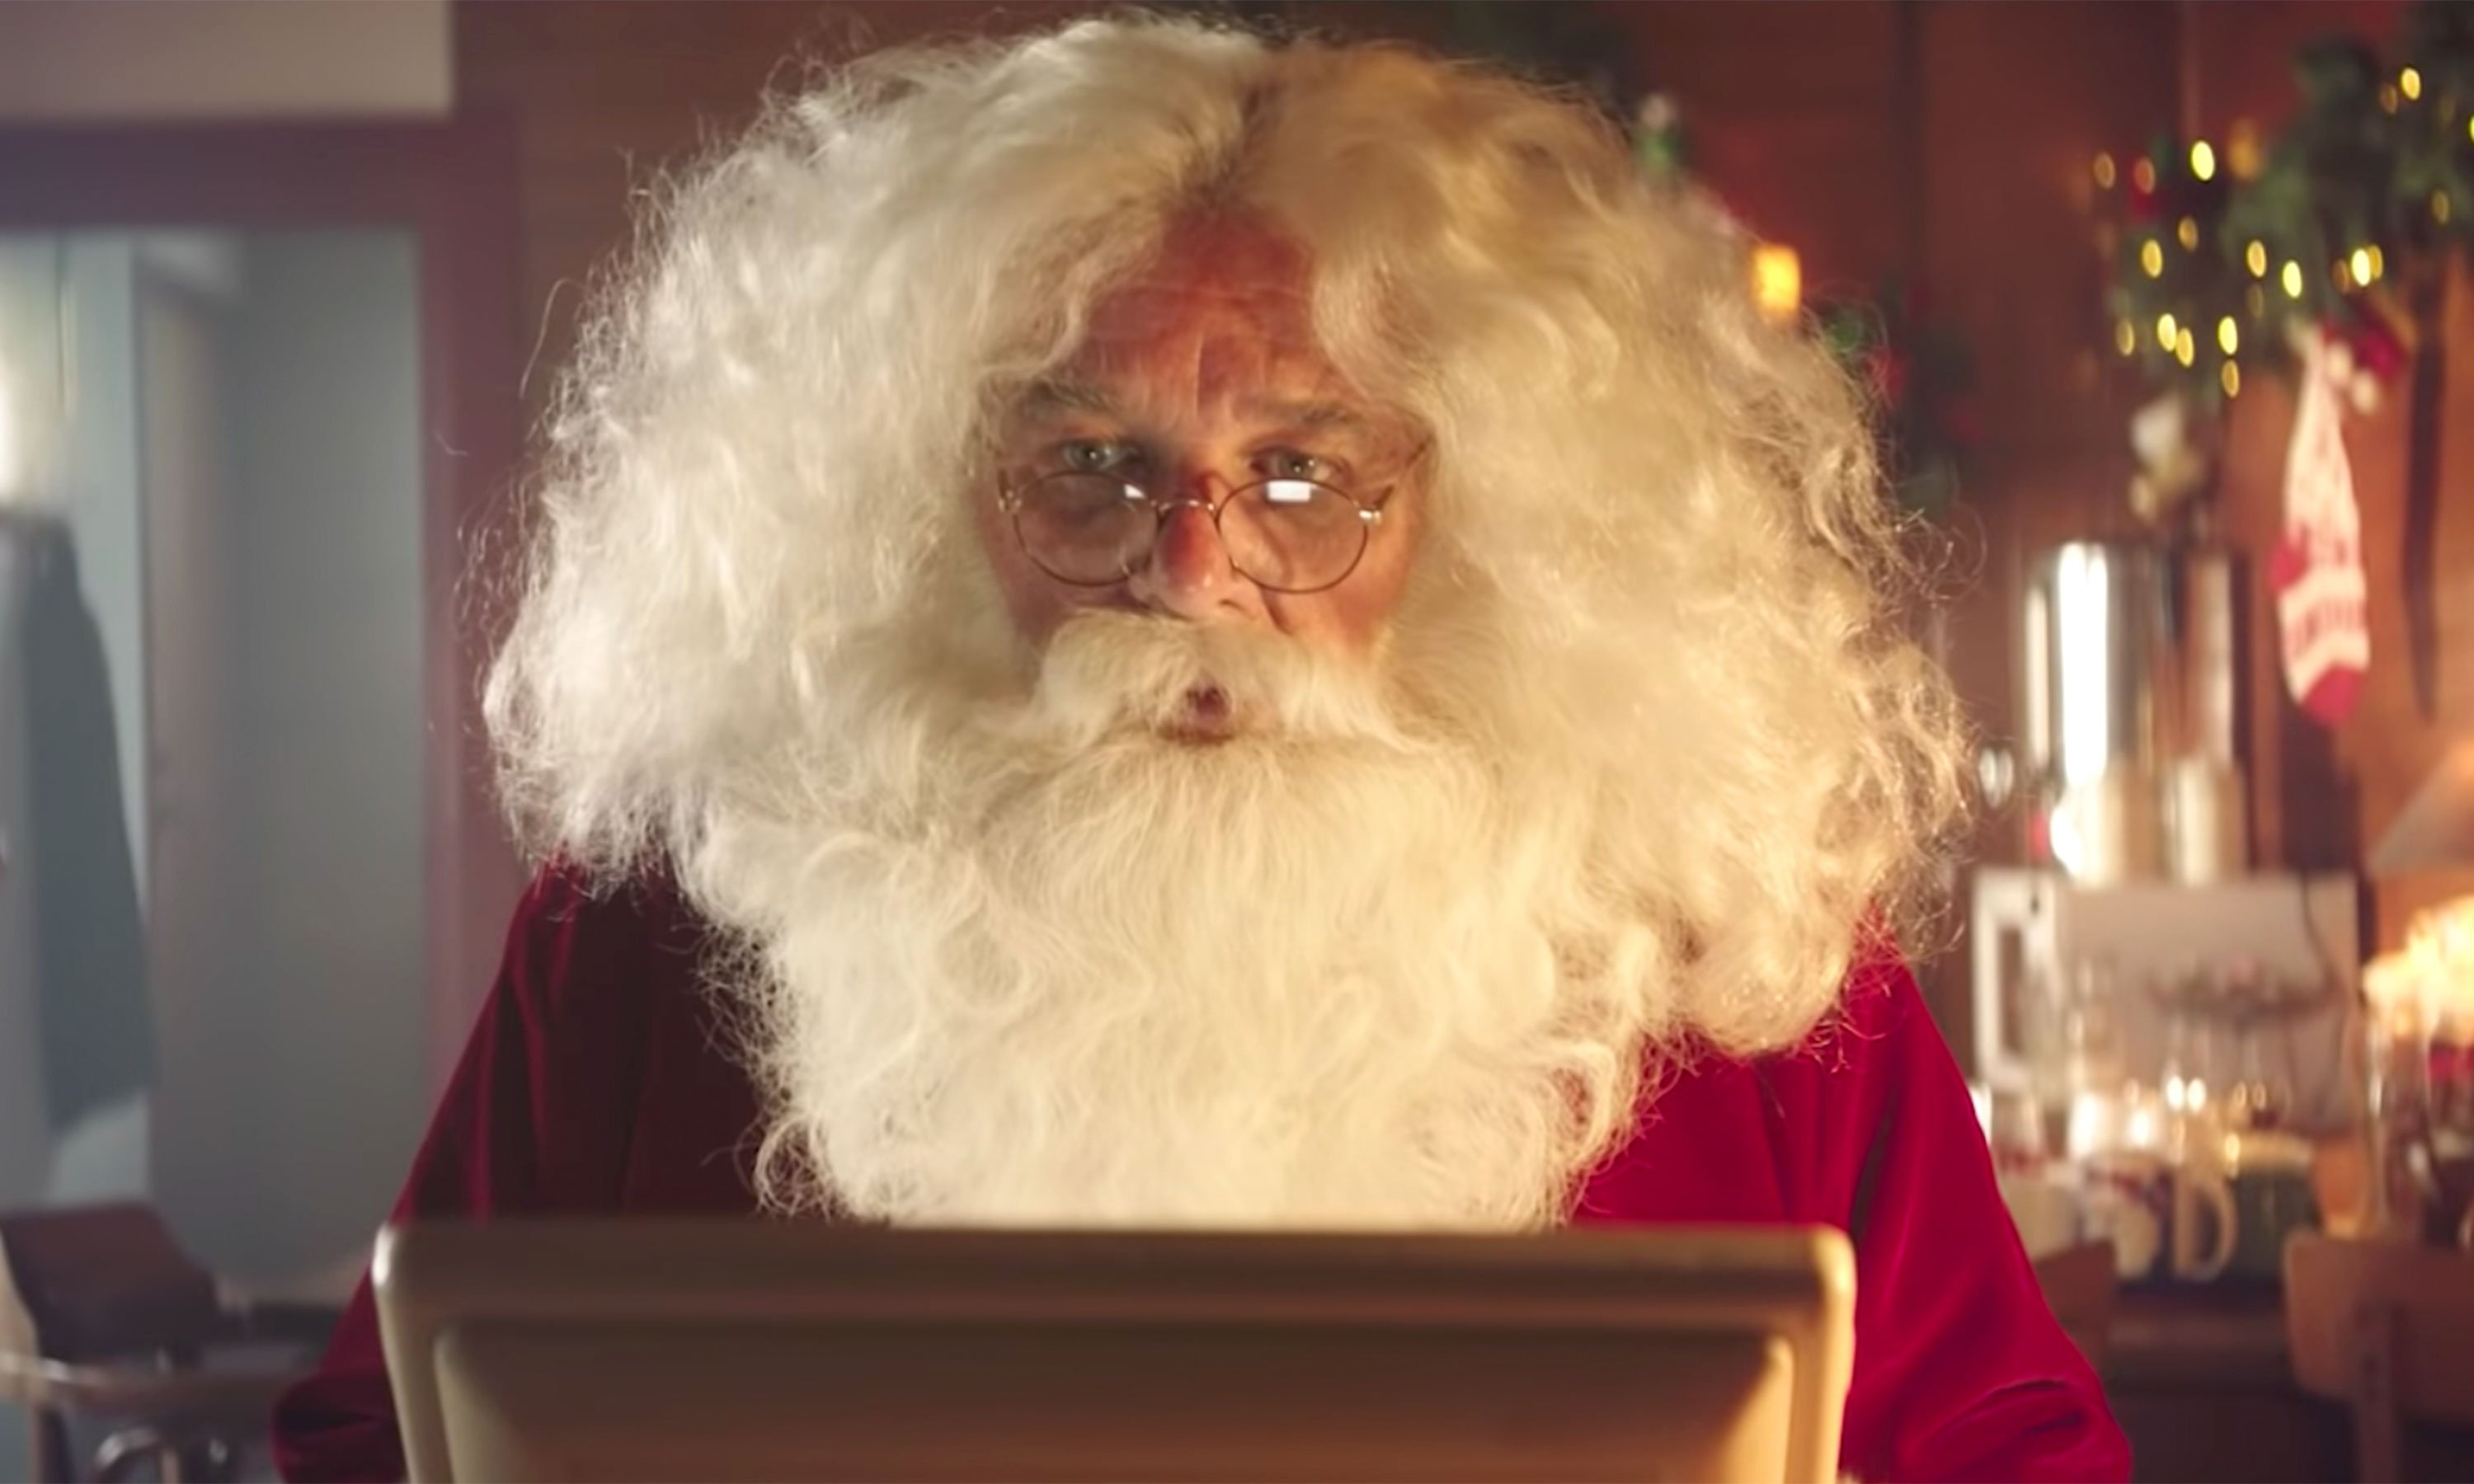 Best Christmas commercials of 2018: Amazon, Apple, Macy's, more